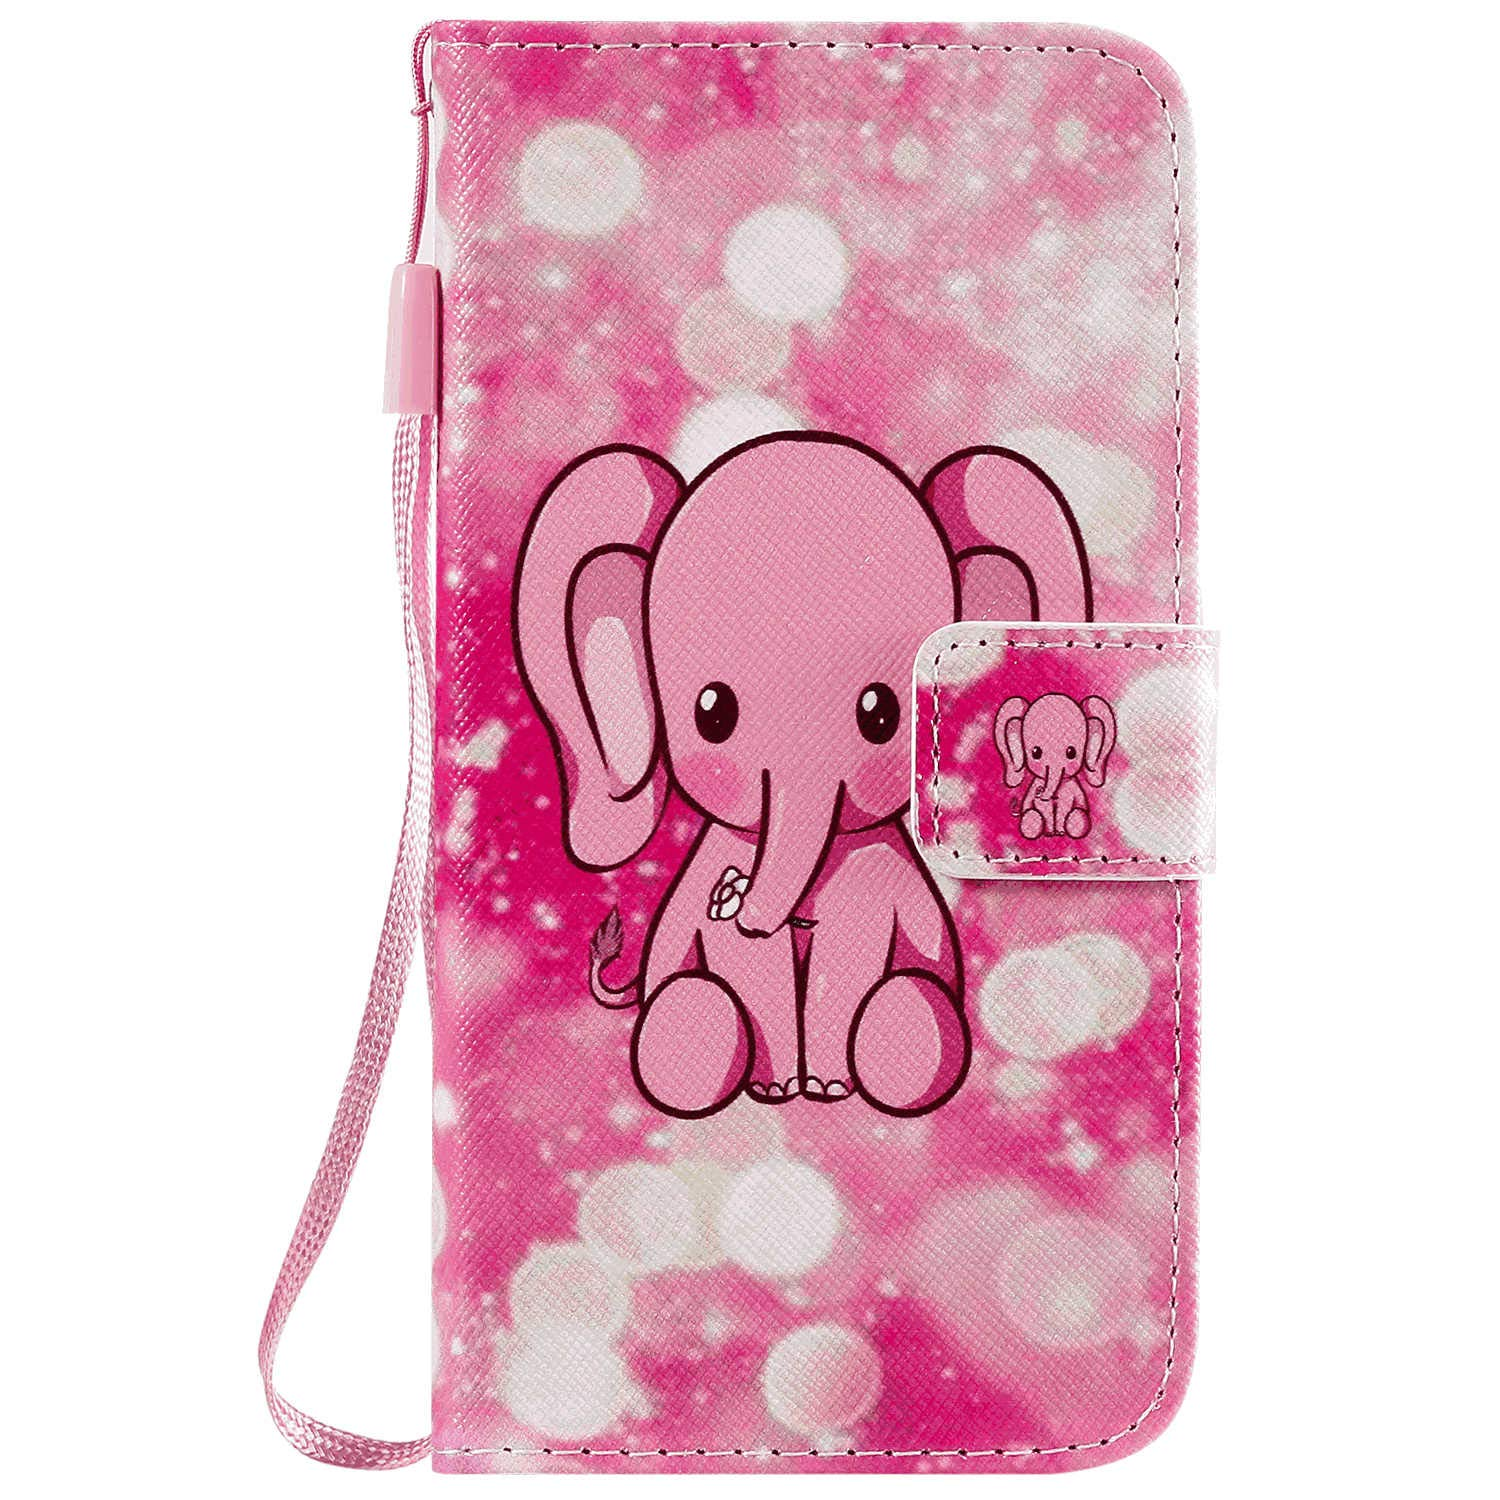 Elephant Leather Cover Wallet for iPhone XR Simple Flip Case Fit for iPhone XR